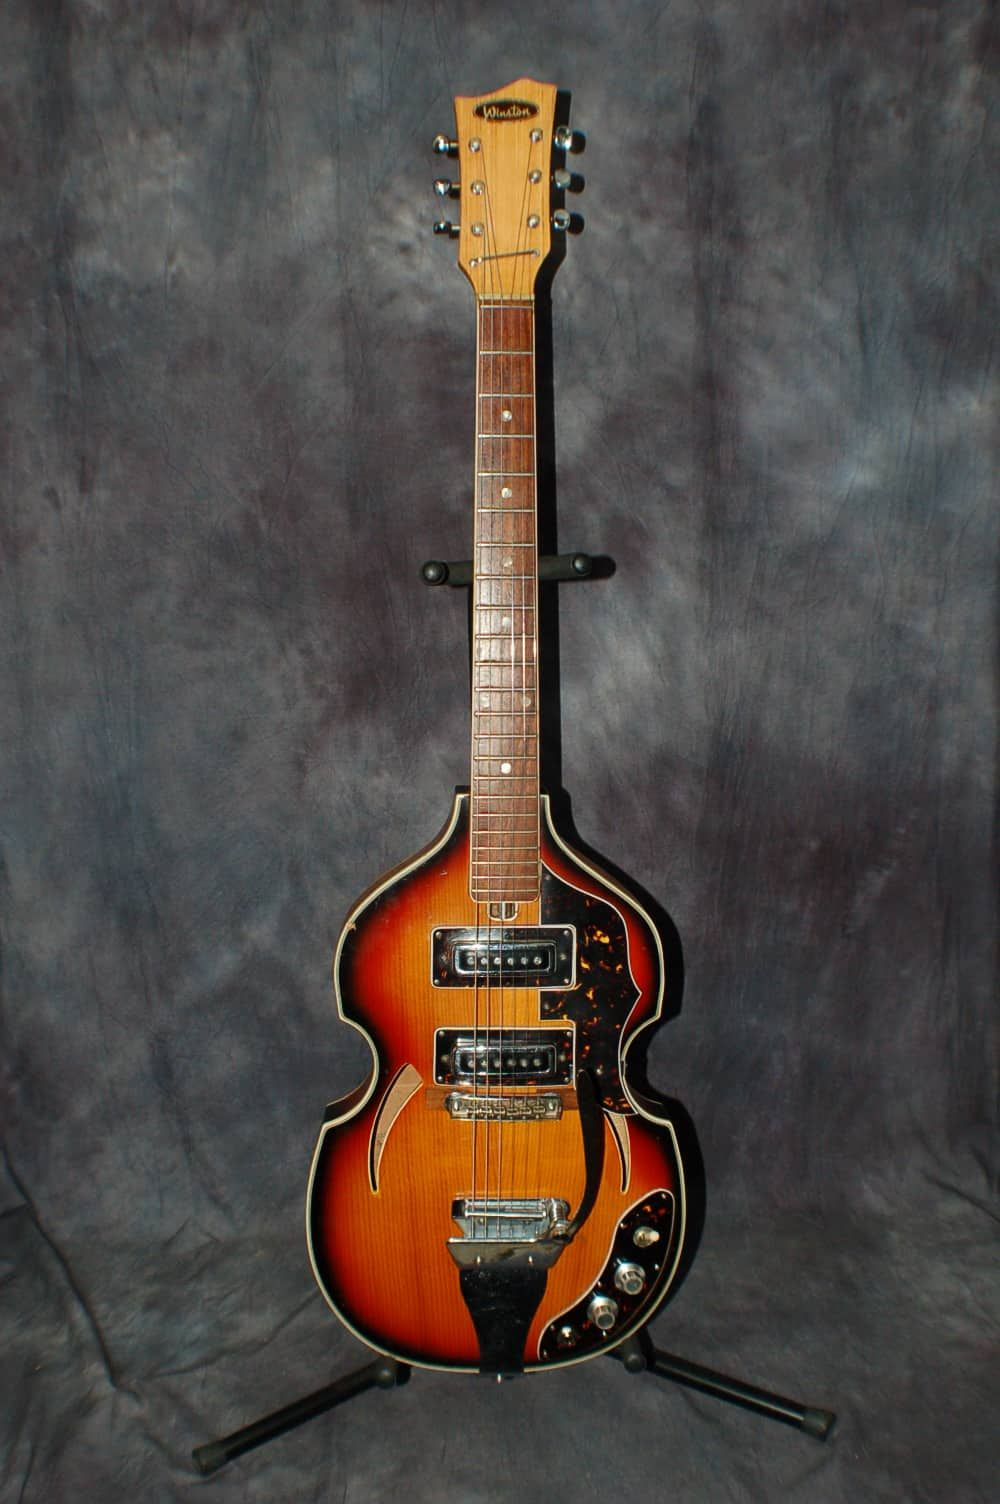 hight resolution of a really cool 1960 s winston by teisco vox violin style guitar with whammy tailpiece this guitar is awesome all original and it plays and sounds great